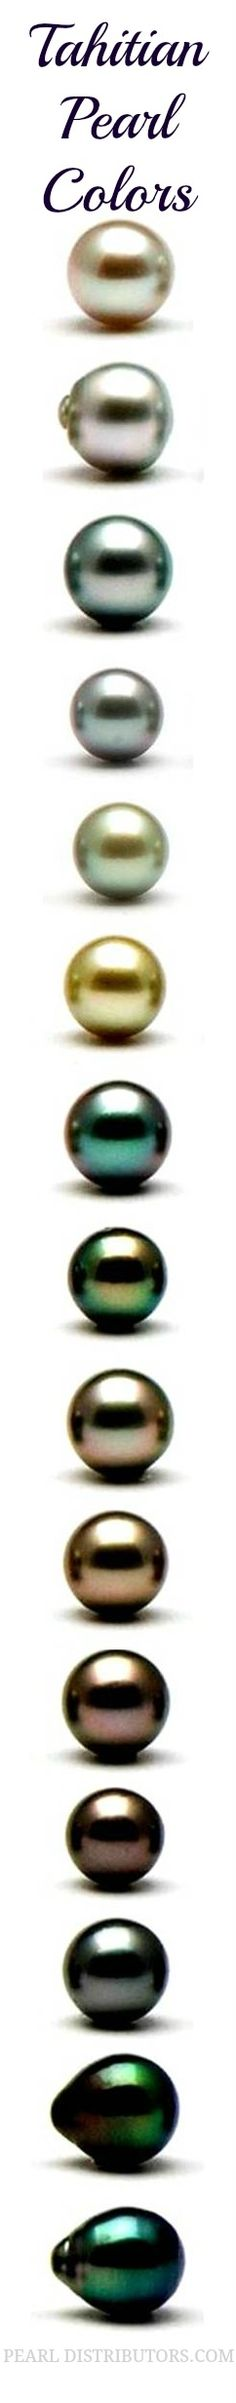 Naturally occurring colors of #Tahitian #pearls